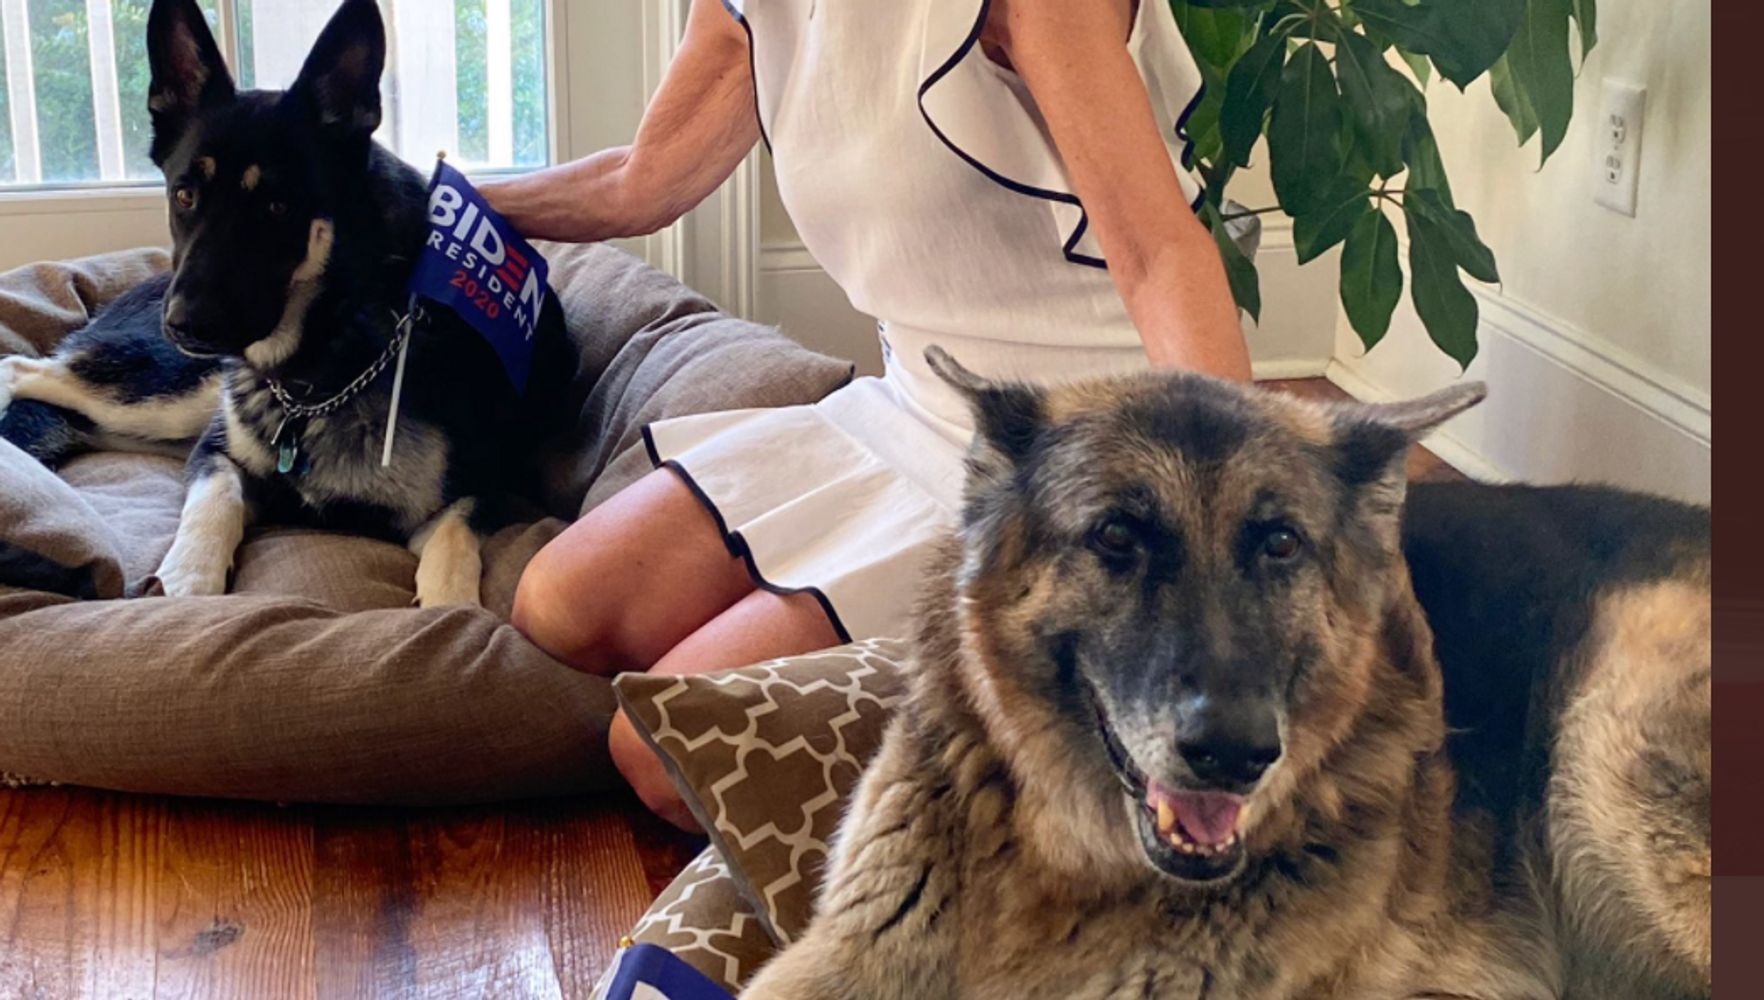 DOTUS: The Bidens' Dogs Champ and Major Debut Their Own Twitter Account